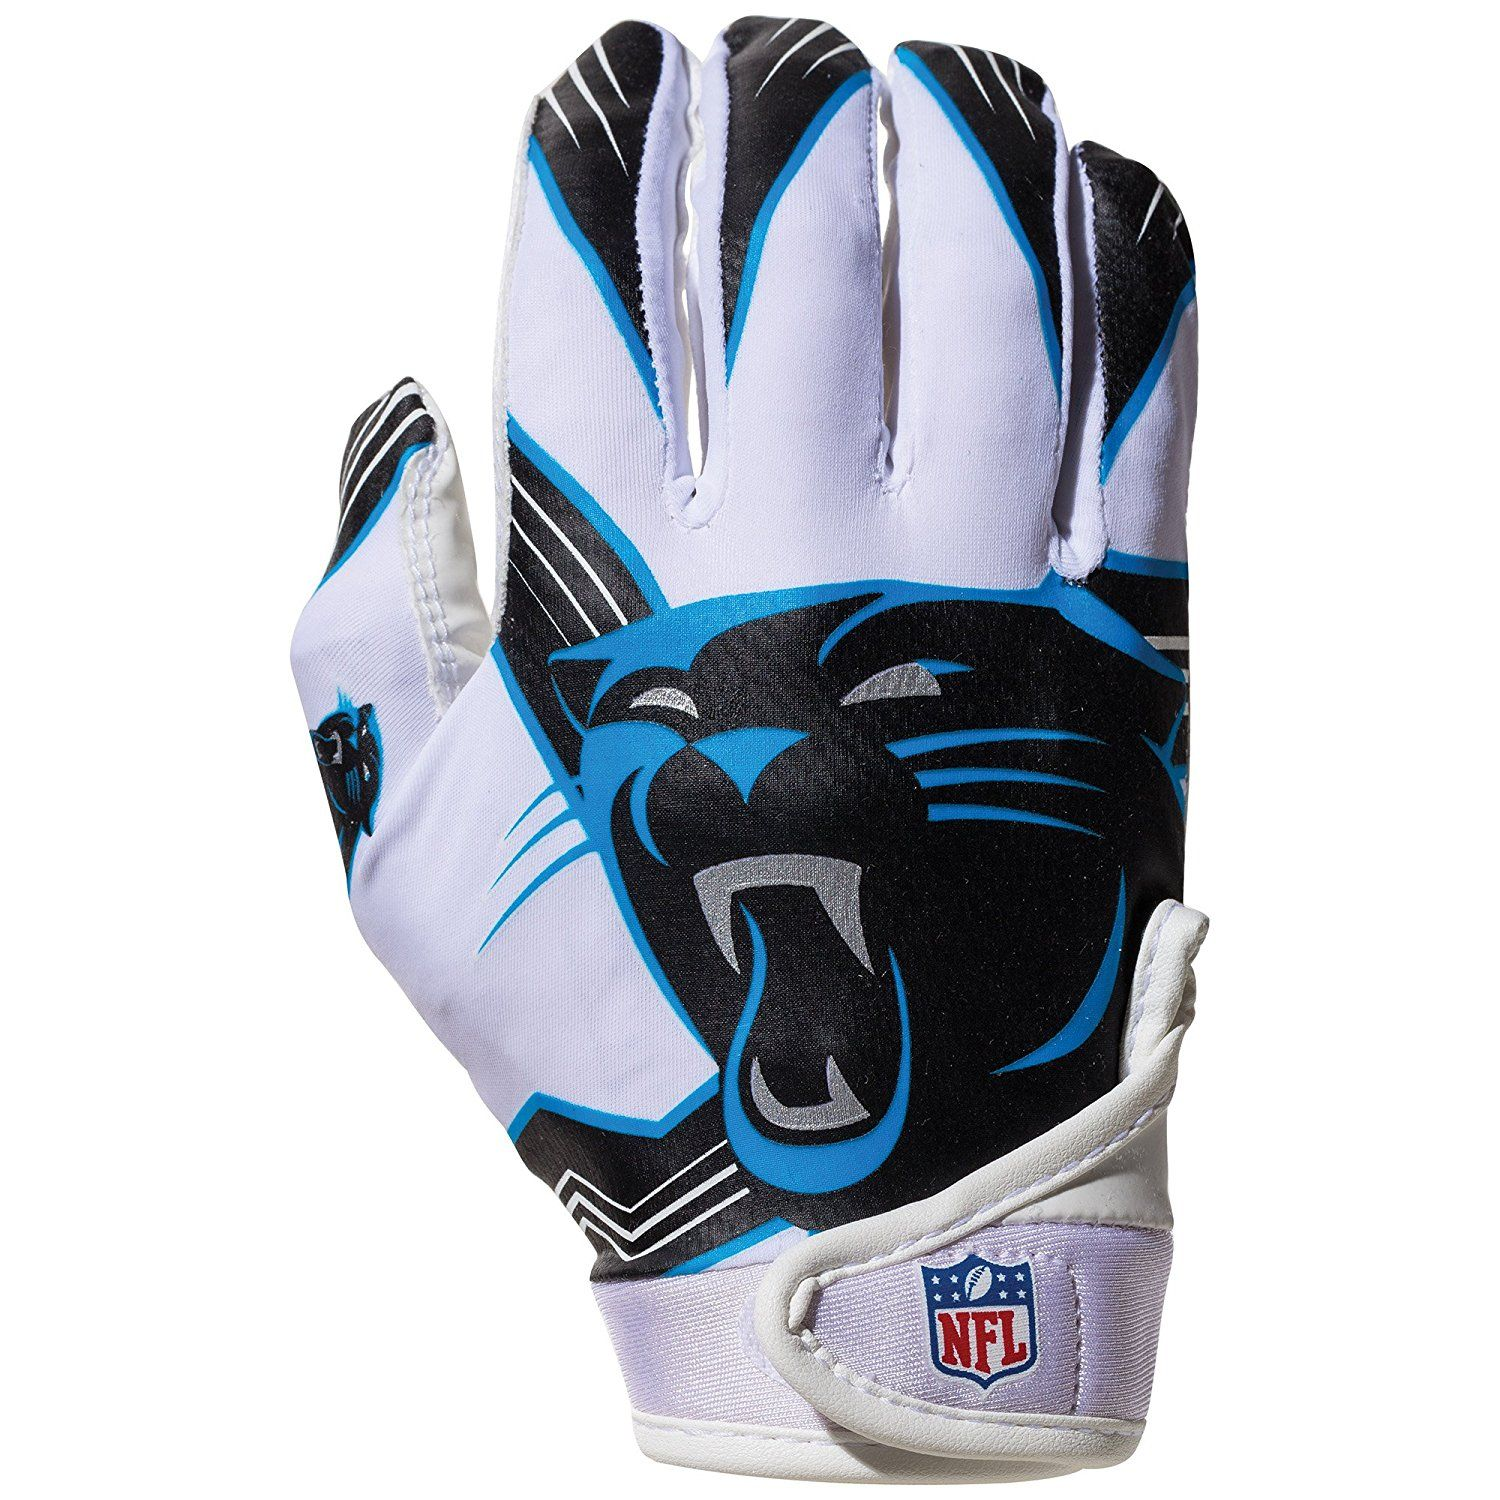 premium selection 57004 8aad9 Amazon.com : NFL Carolina Panthers Youth Receiver Gloves ...